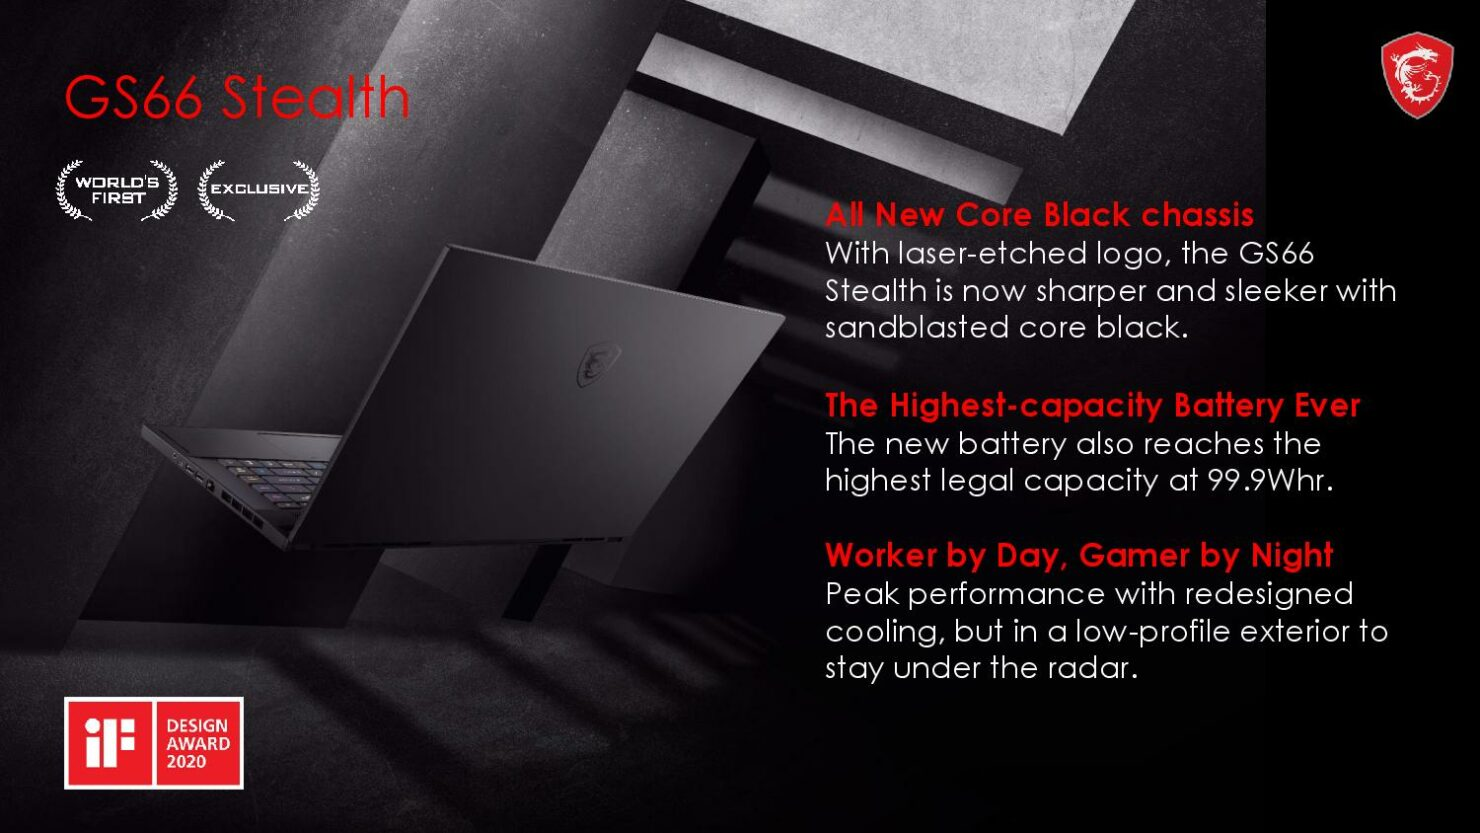 msi-gs66-stealth-product-information-page-004-2